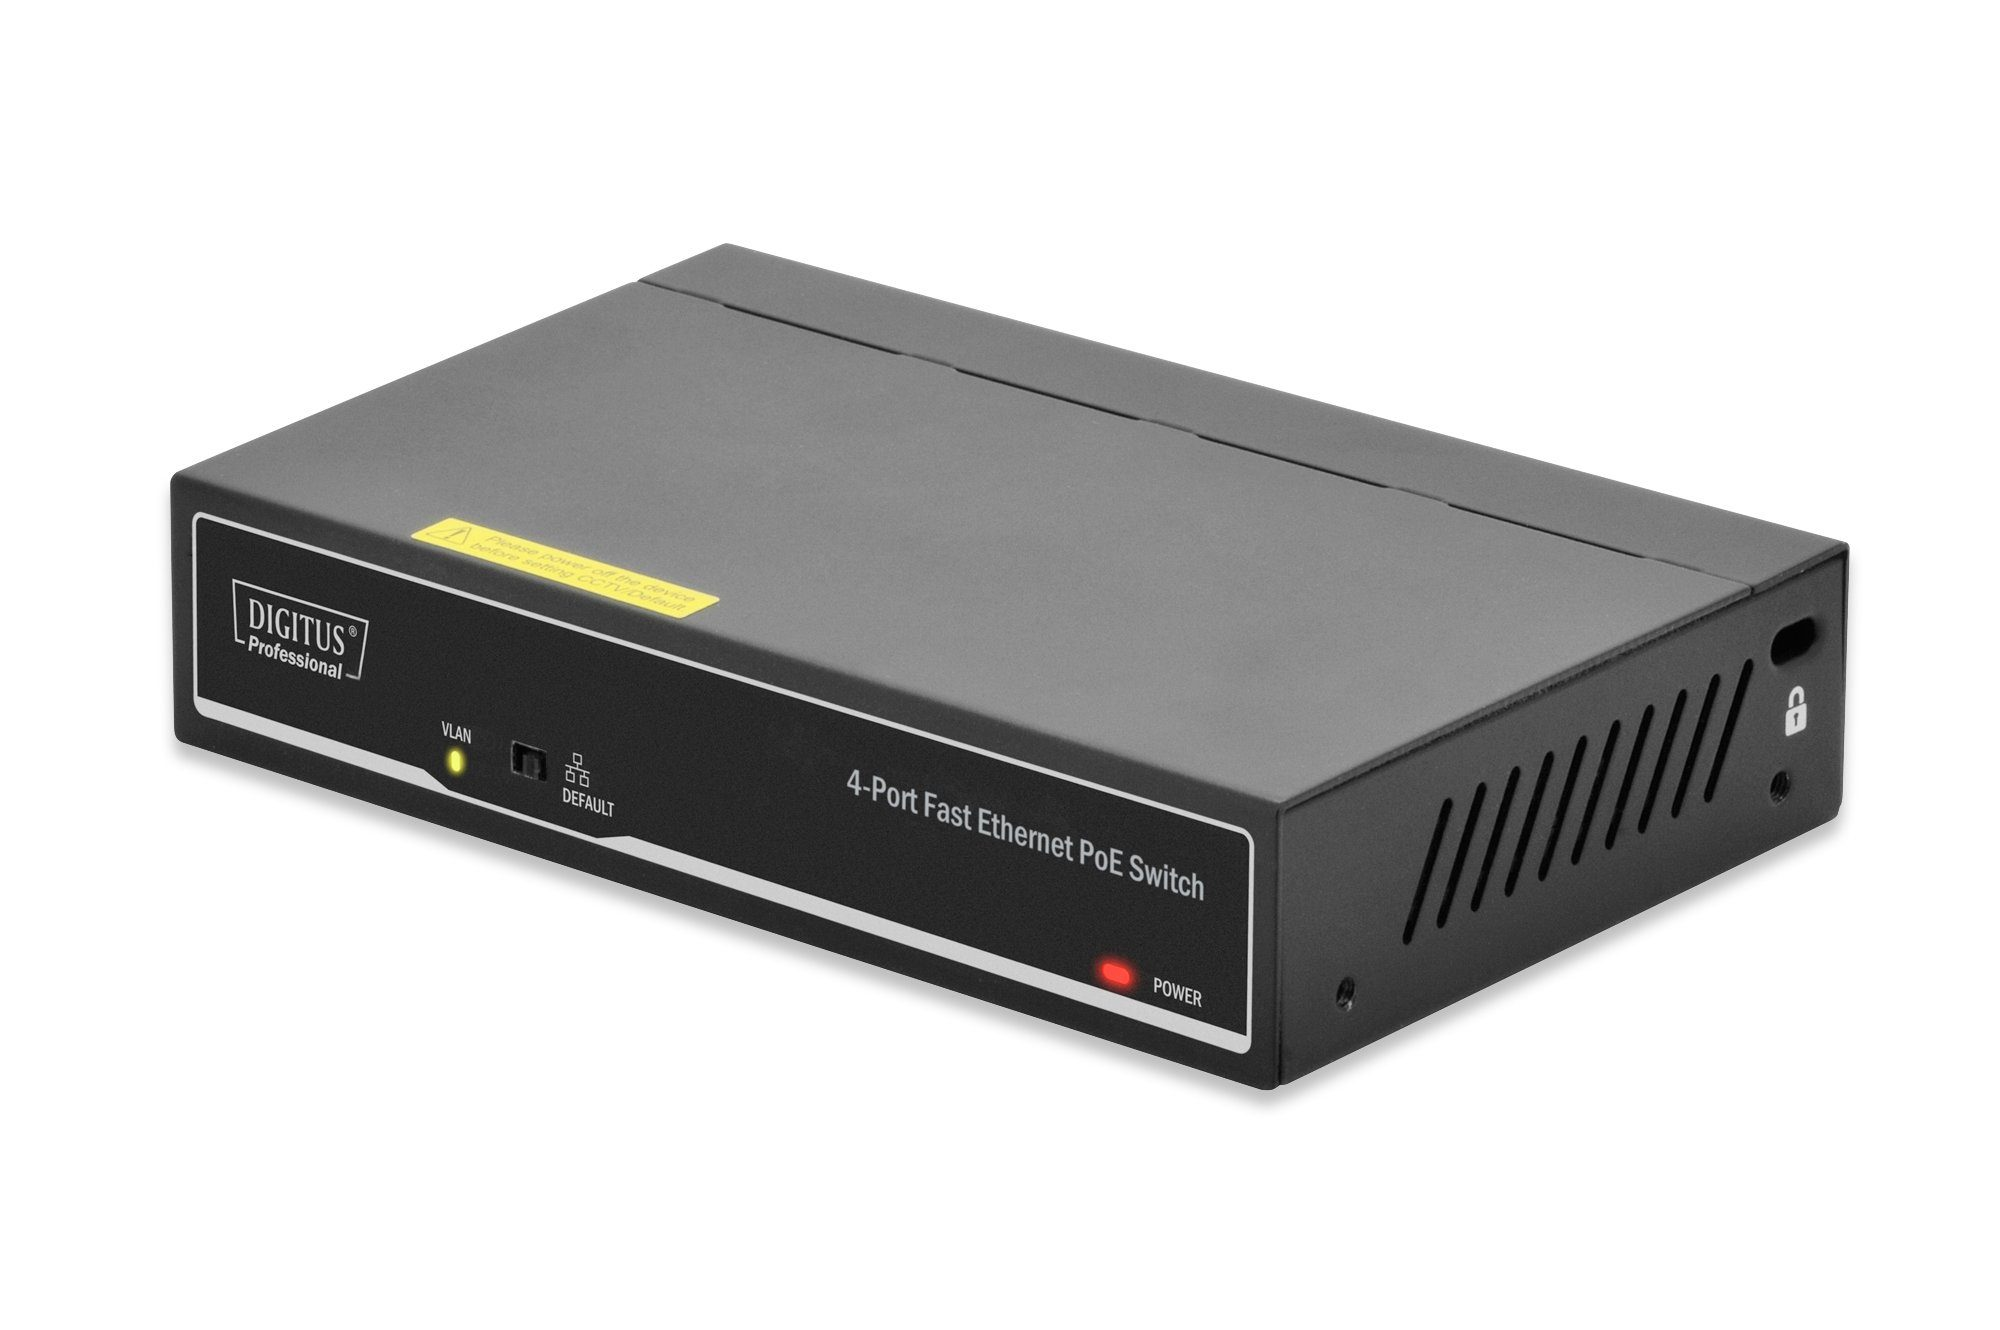 Digitus Switch Hardware »4Port Fast Ethernet PoE Switch«